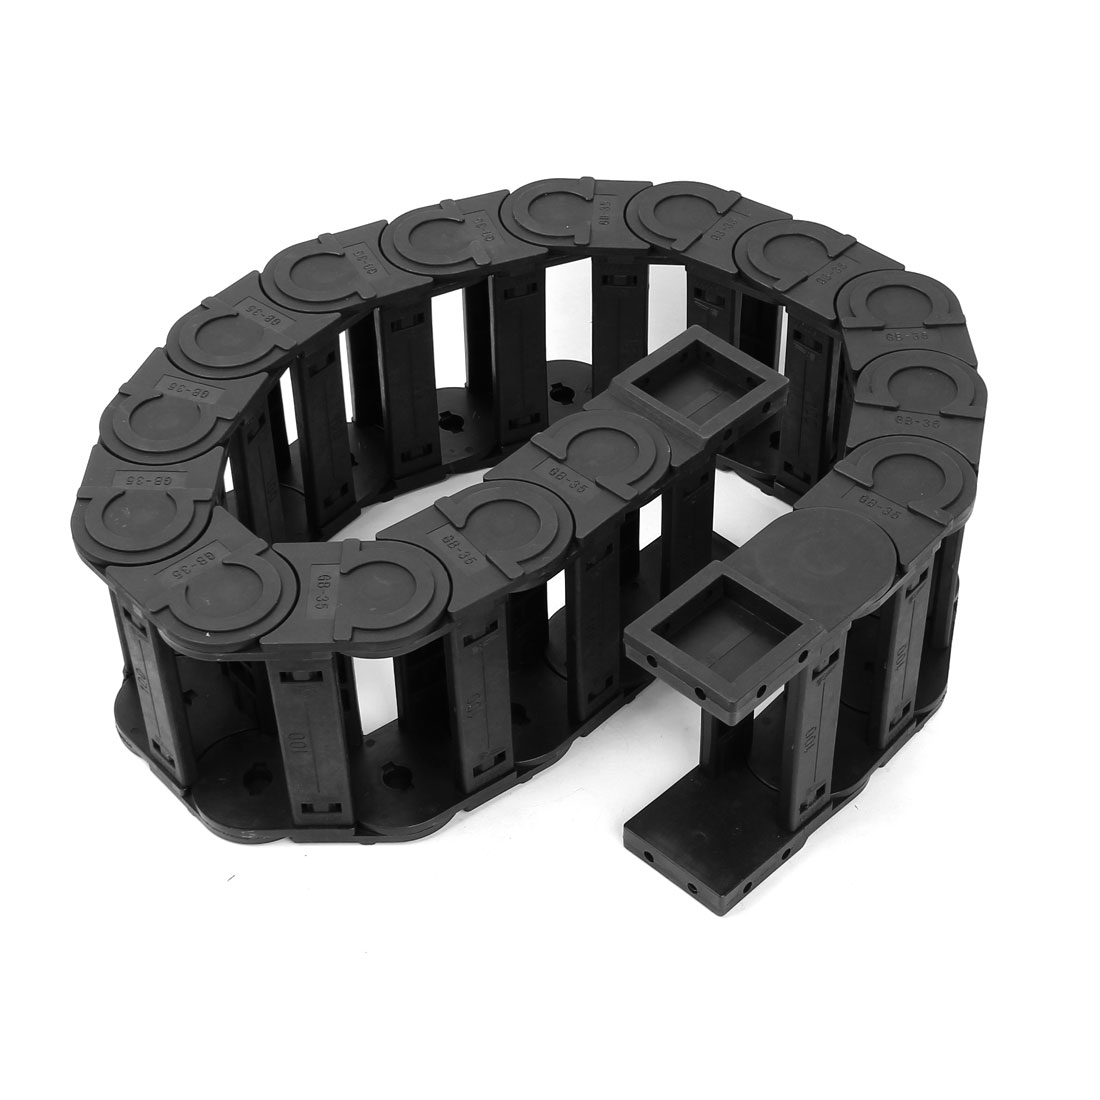 Black Plastic Drag Chain Cable Carrier 35 x 100mm for CNC Machine